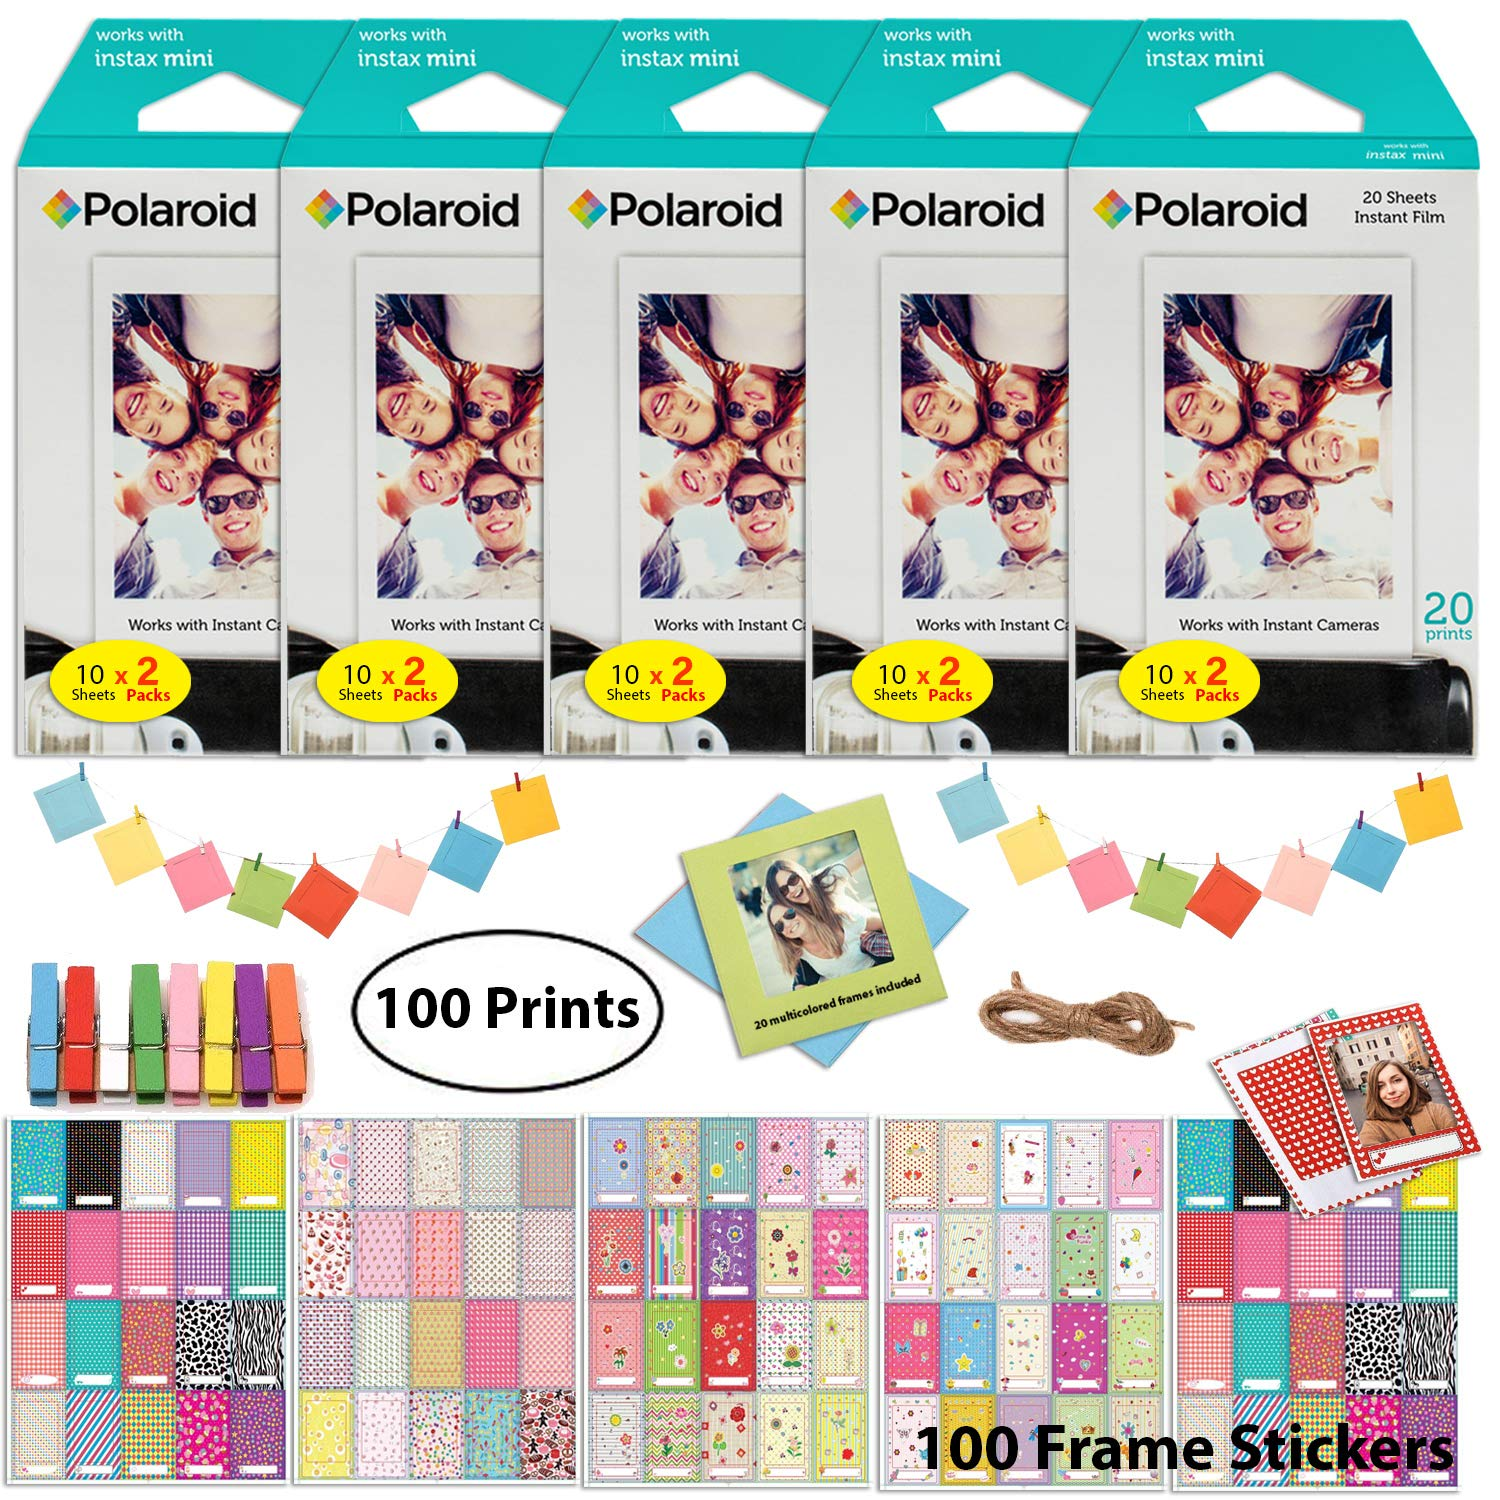 Polaroid Instant Film (100 Sheets) and Picture Frame Accessory Bundle - Designed for use with Fujifilm Instax Mini and PIC 300 Cameras by Polaroid